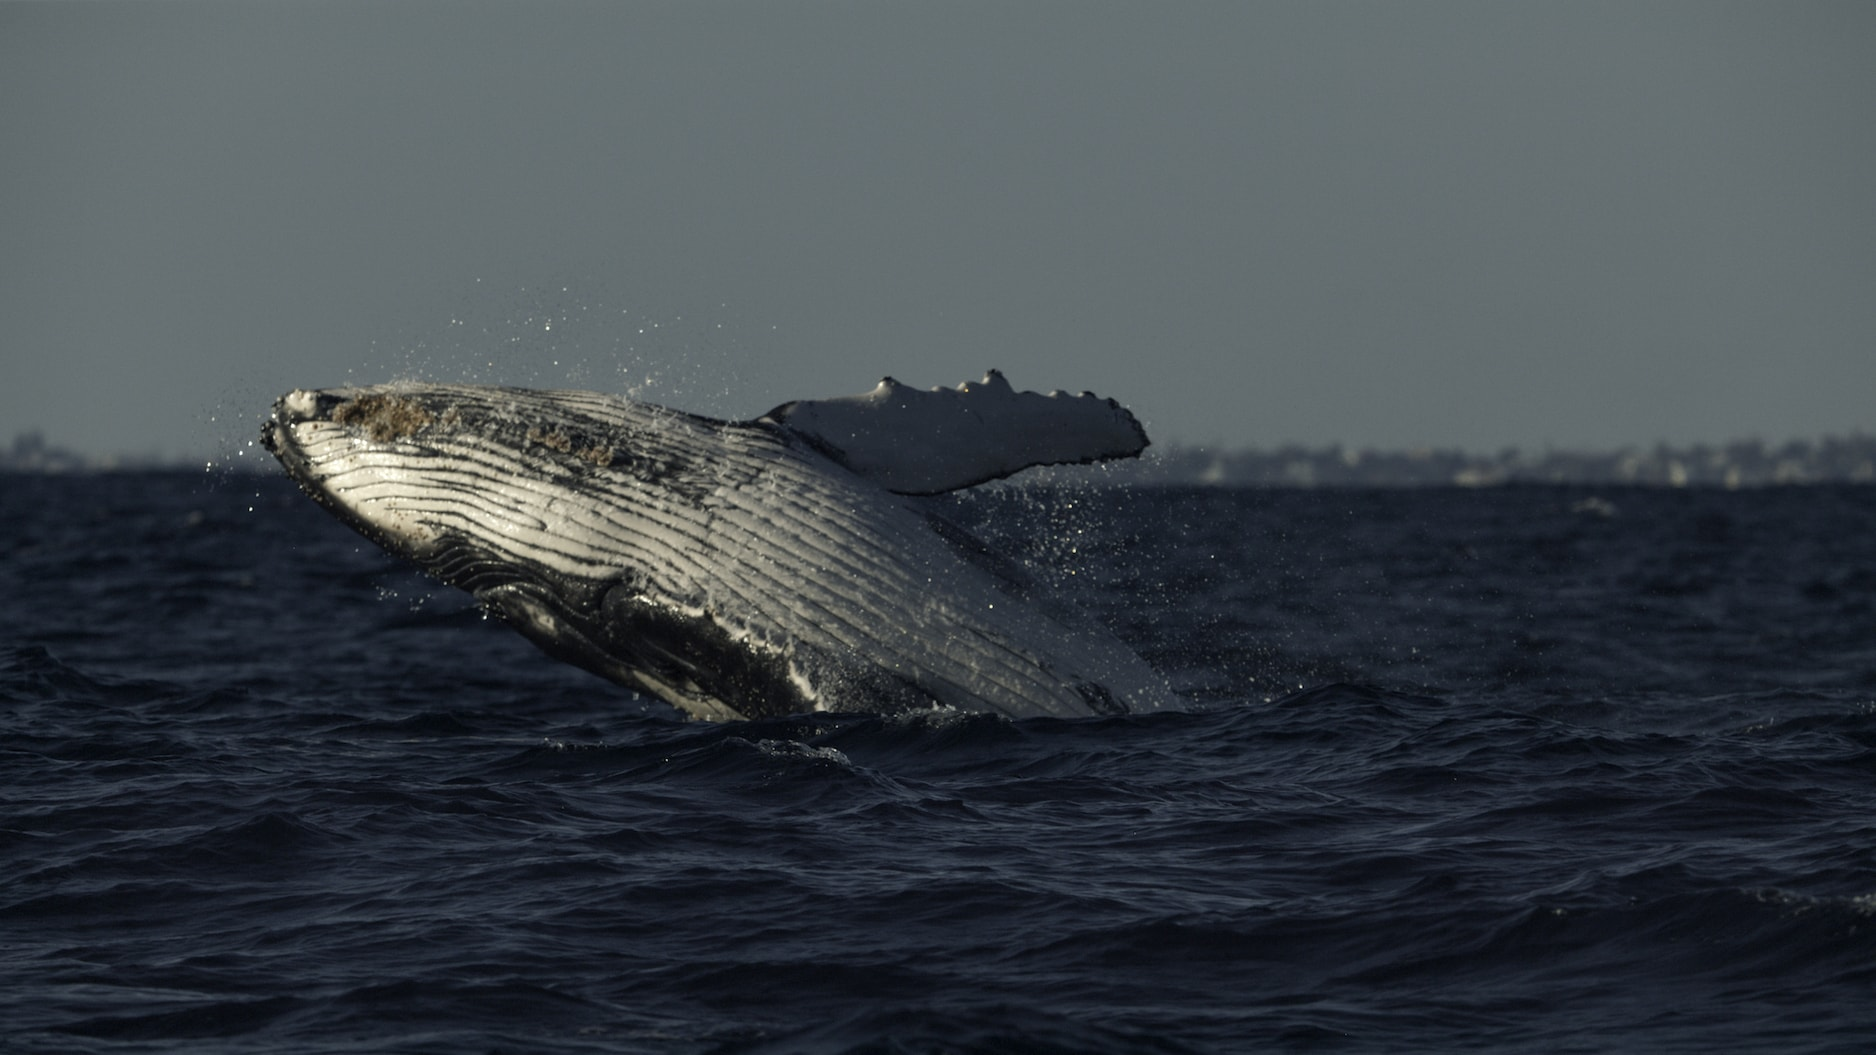 Scientists believe humpbacks breach to communicate to other whales - although it also looks like fun. (National Geographic for Disney+/Hayes Baxley)